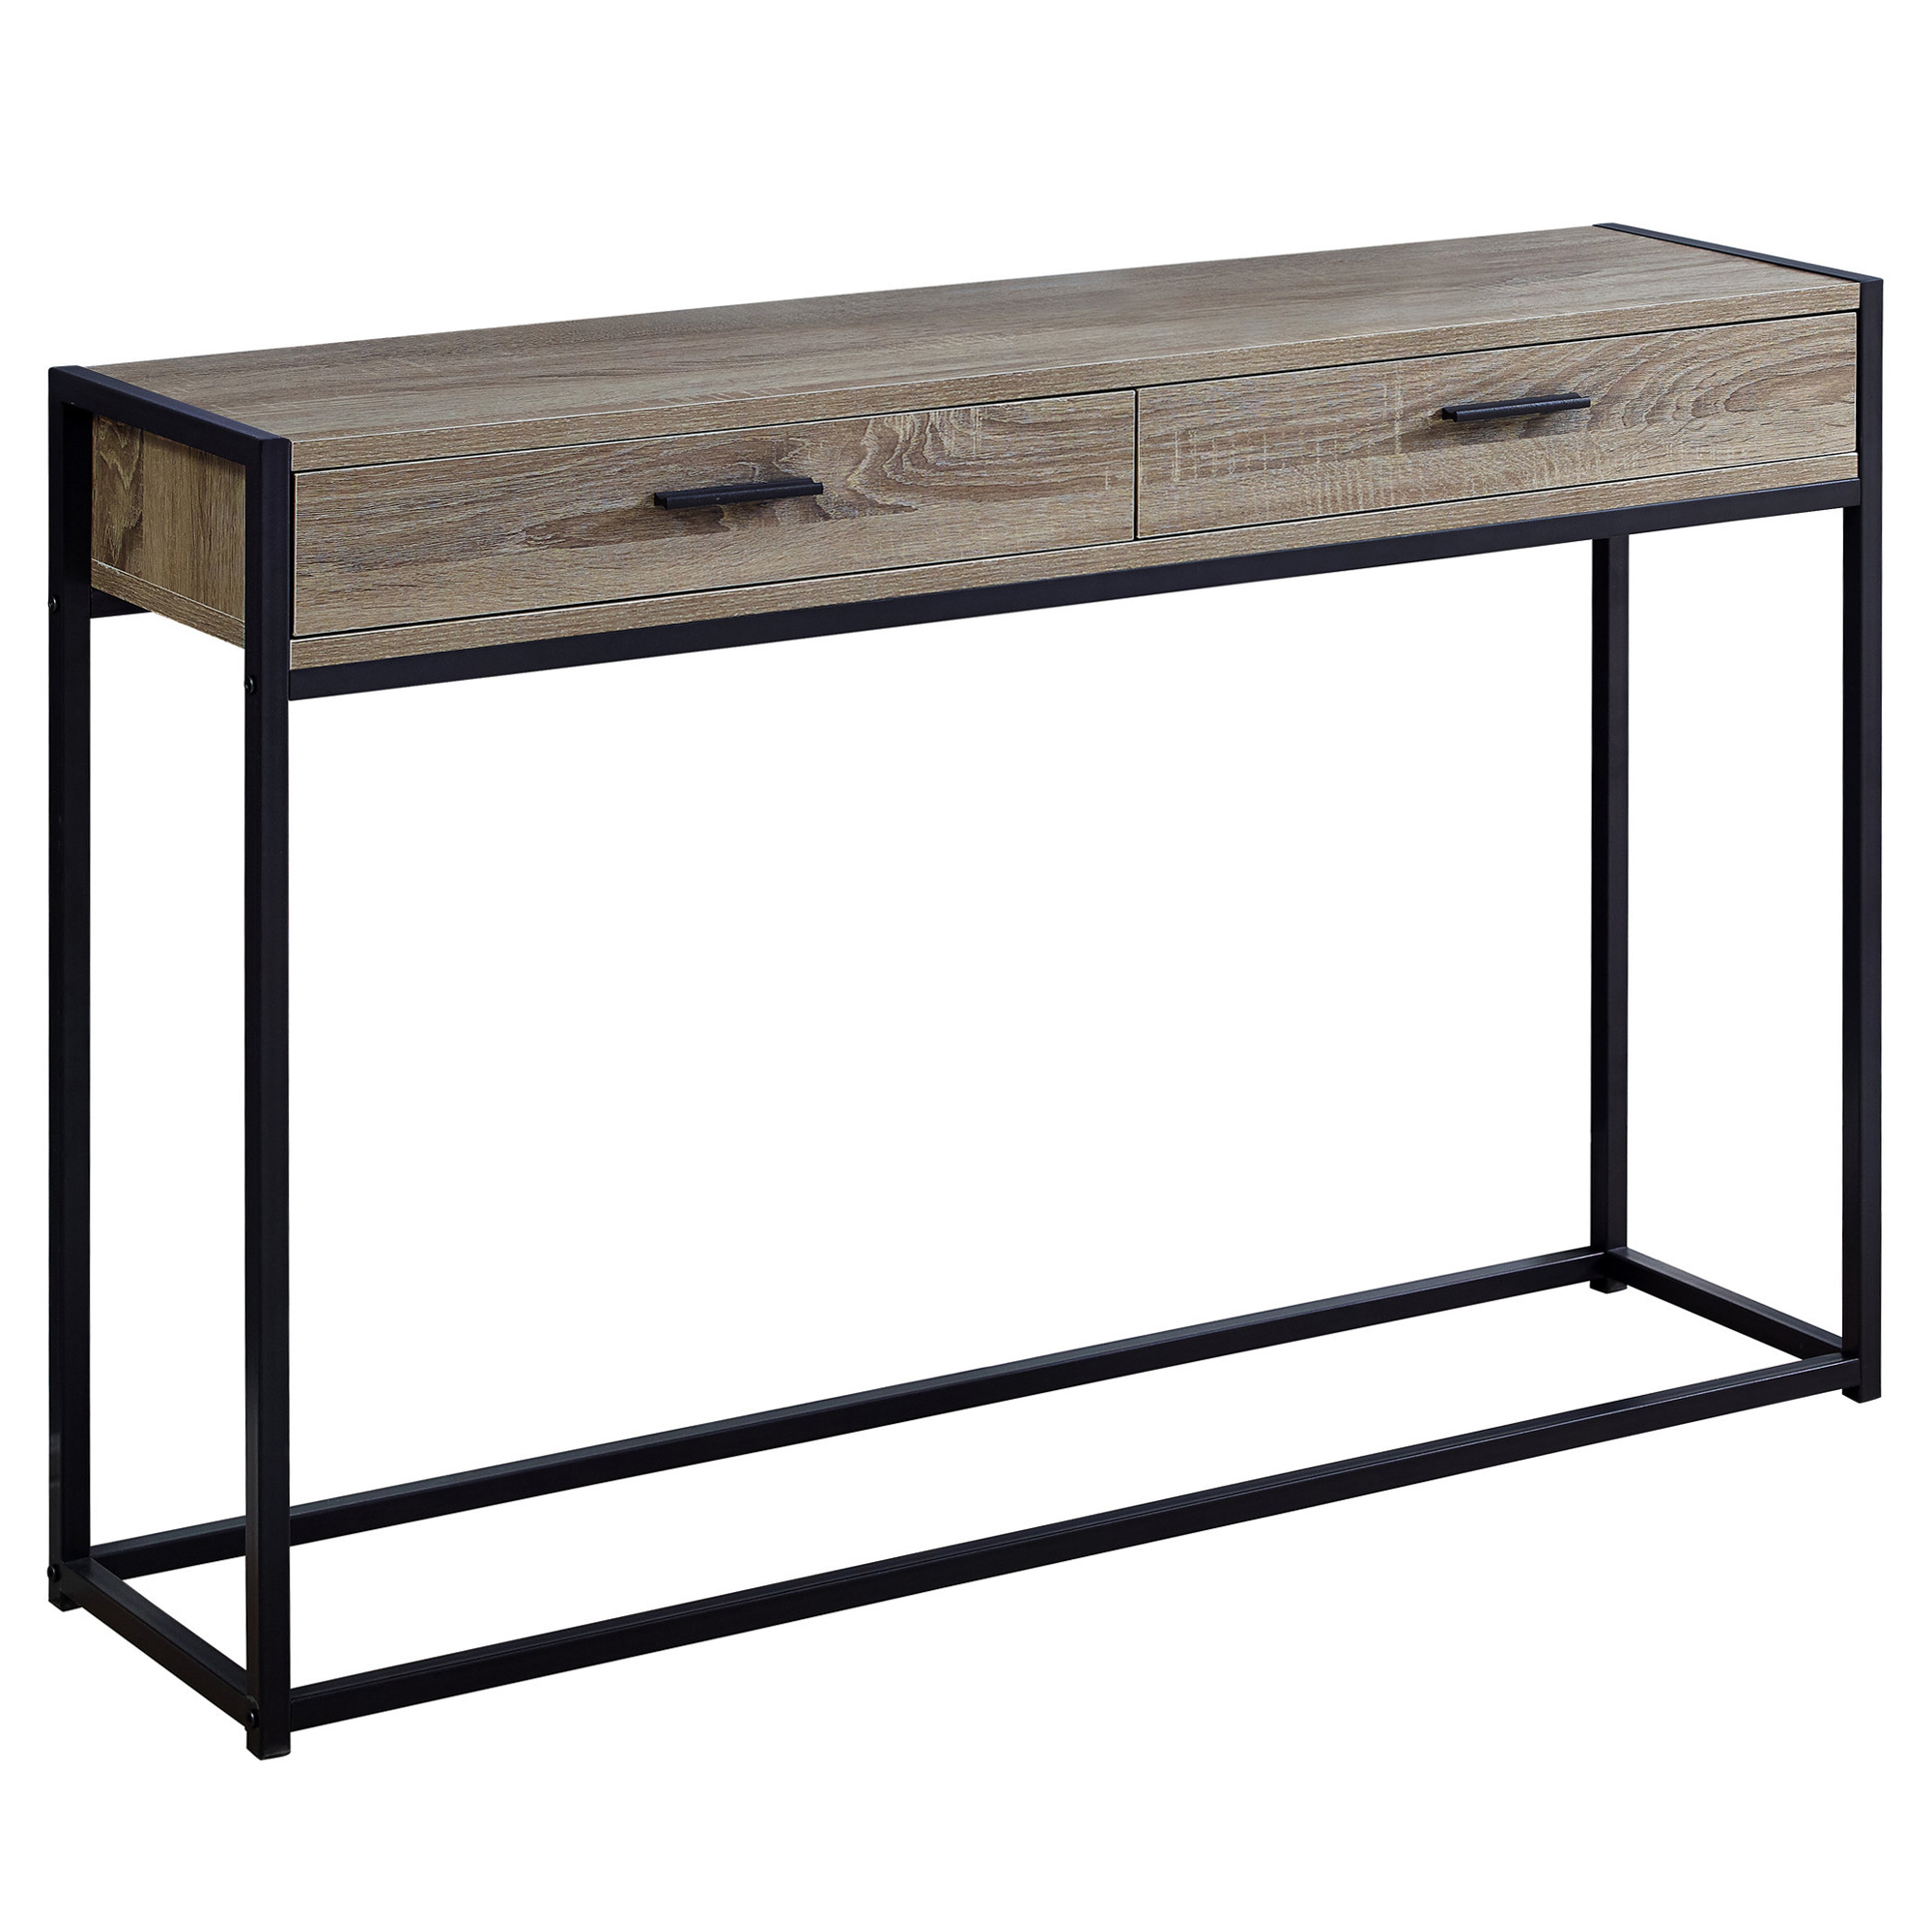 "12"" x 48"" x 32"" Dark Taupe Laminated Finish and Black Metal Accent Table"